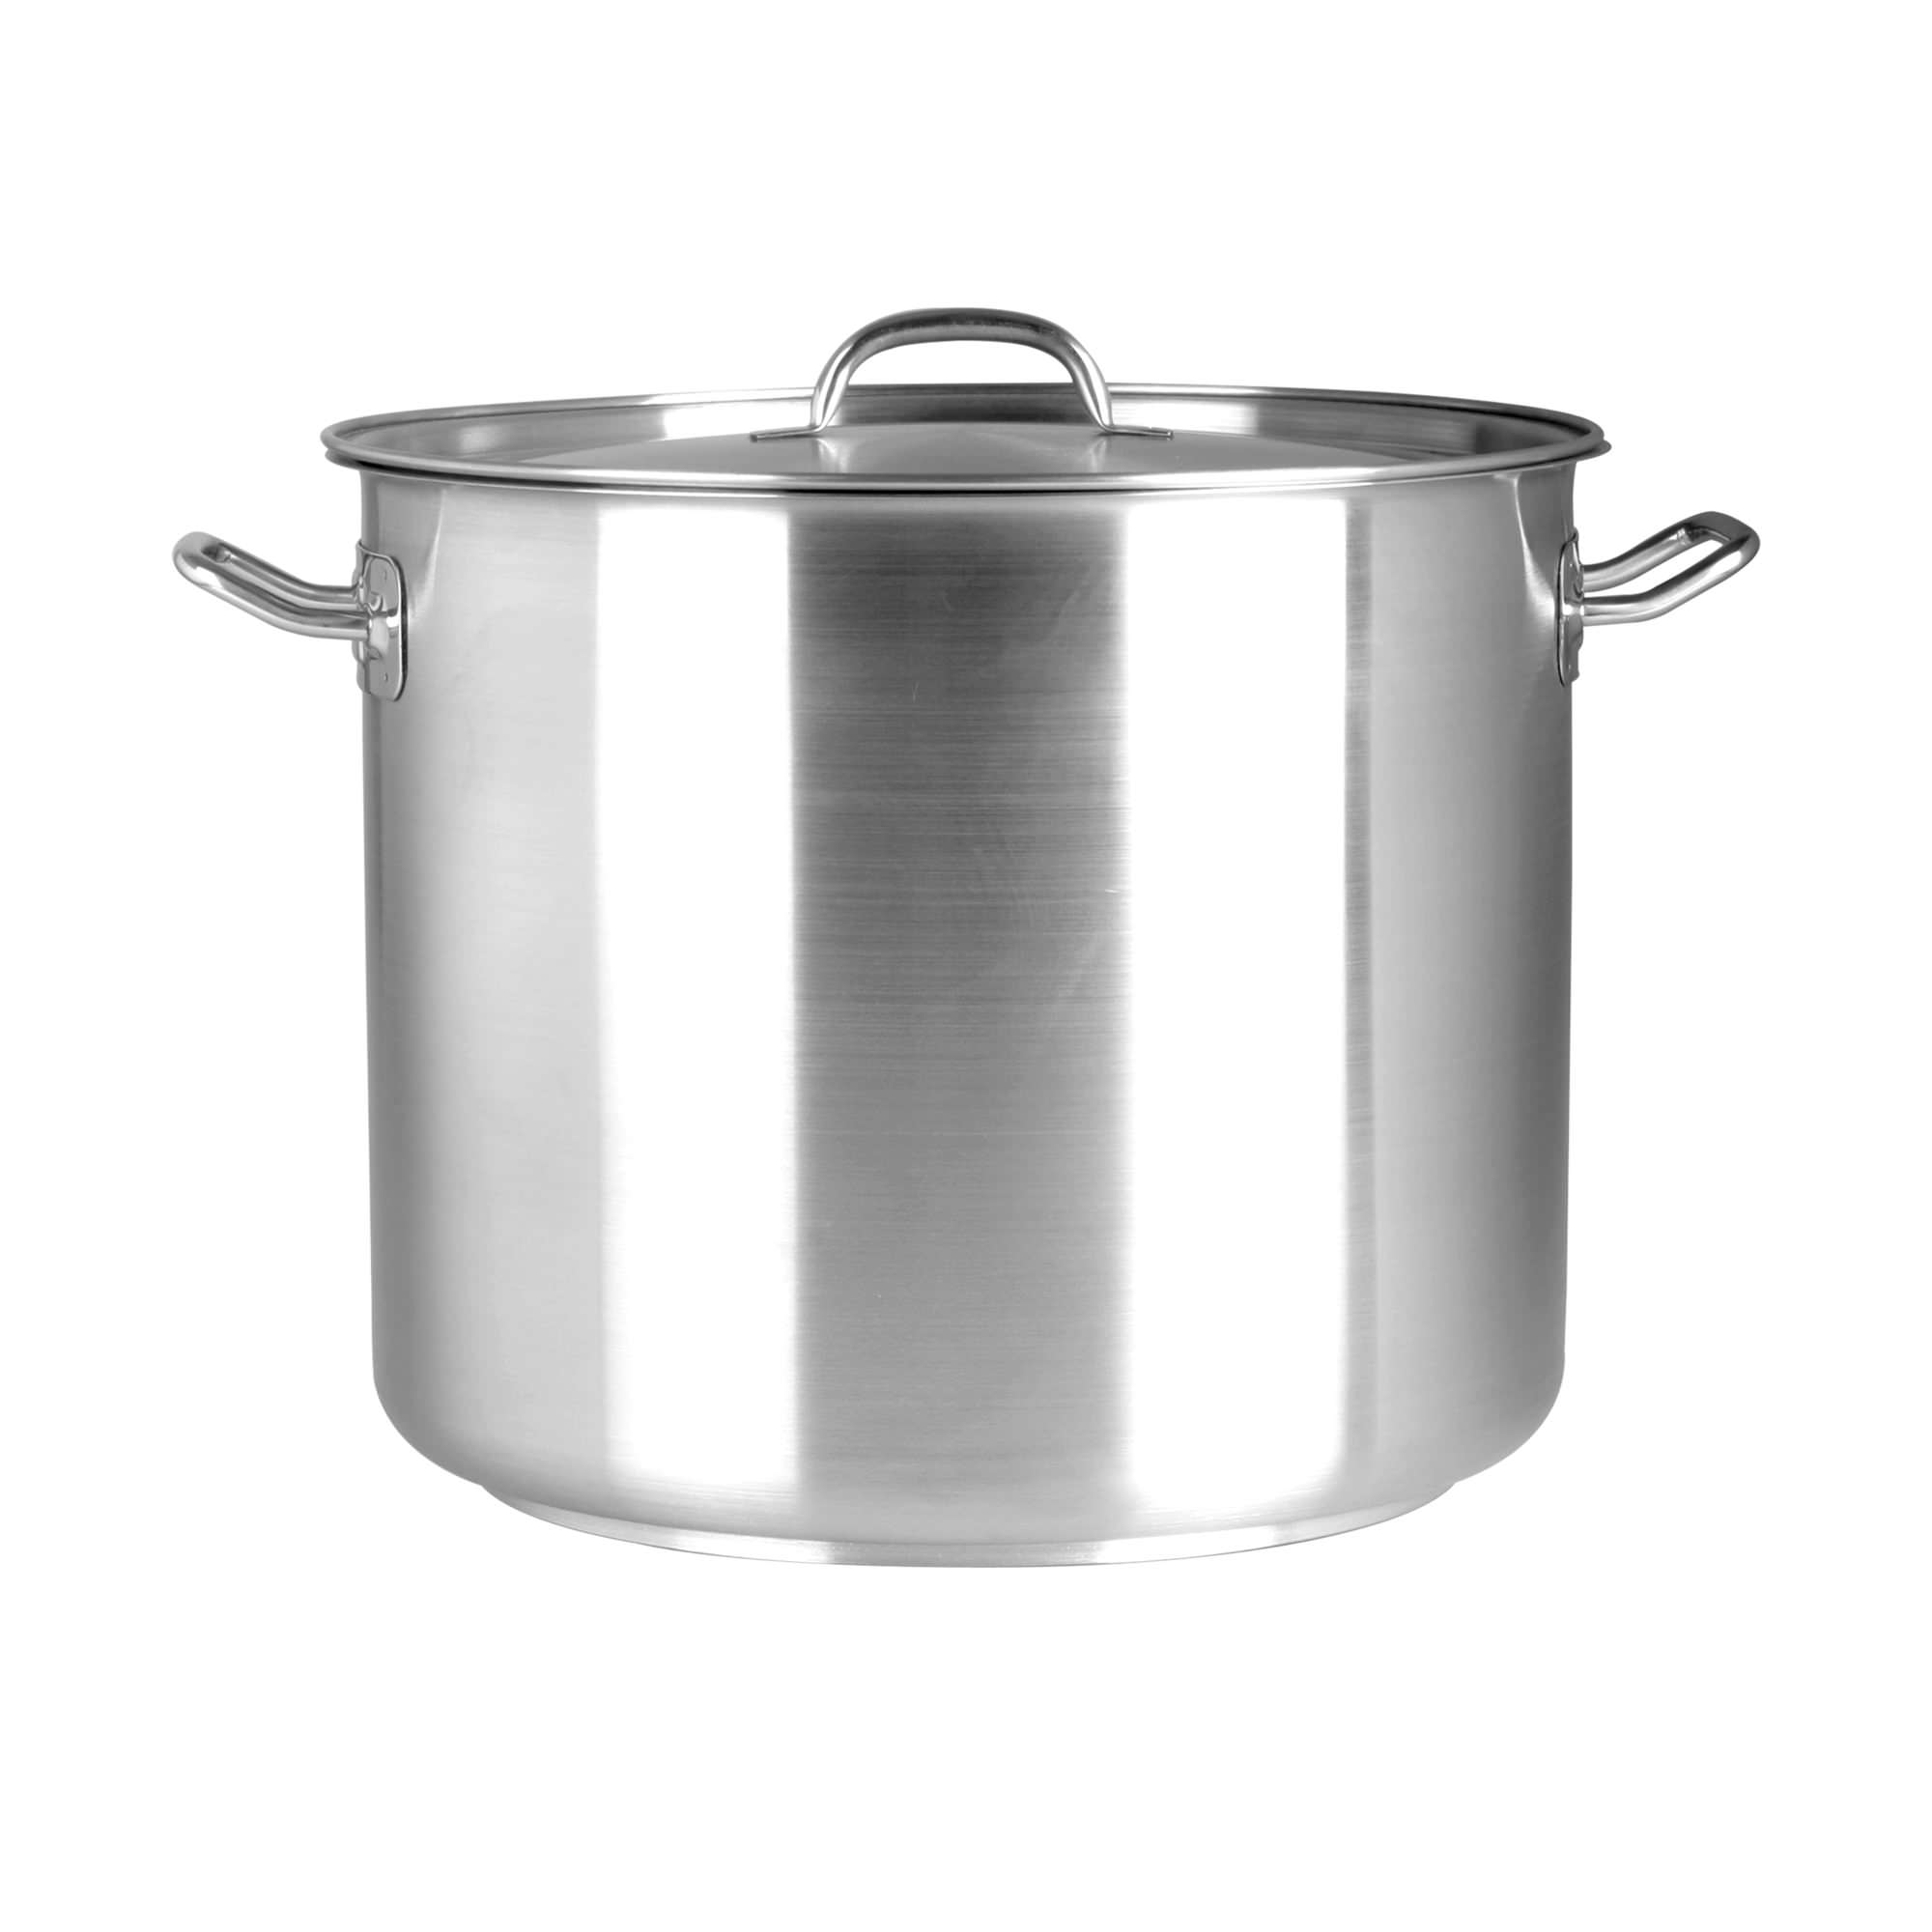 Chef Inox Elite Stainless Steel Stockpot 28cm - 16.5L